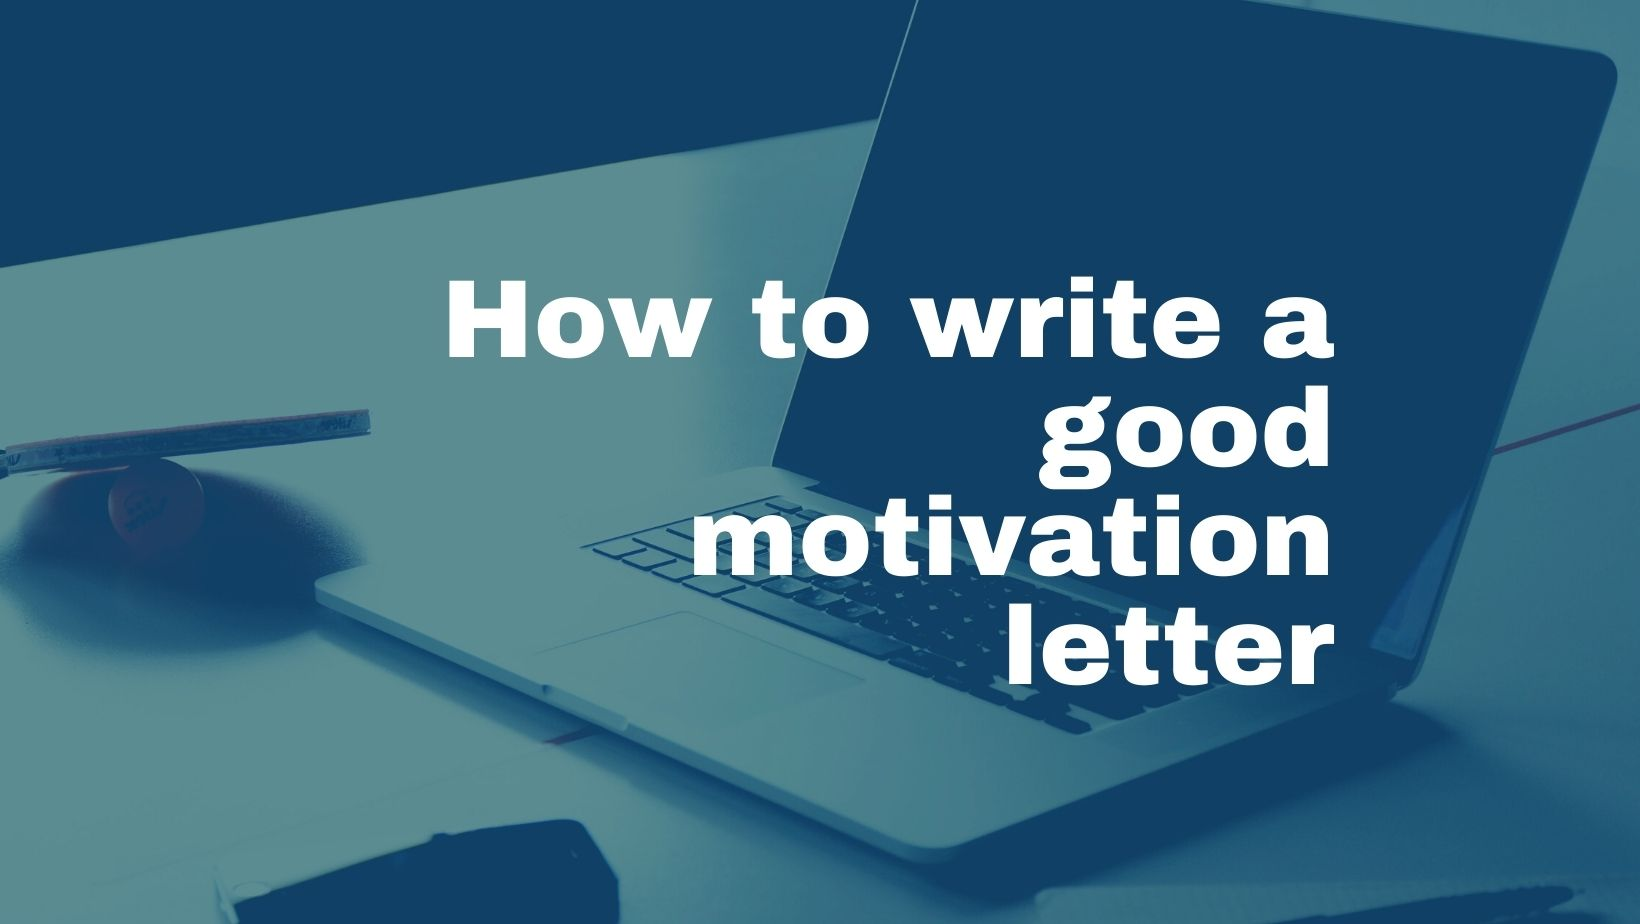 How To Write A Good Motivation Letter